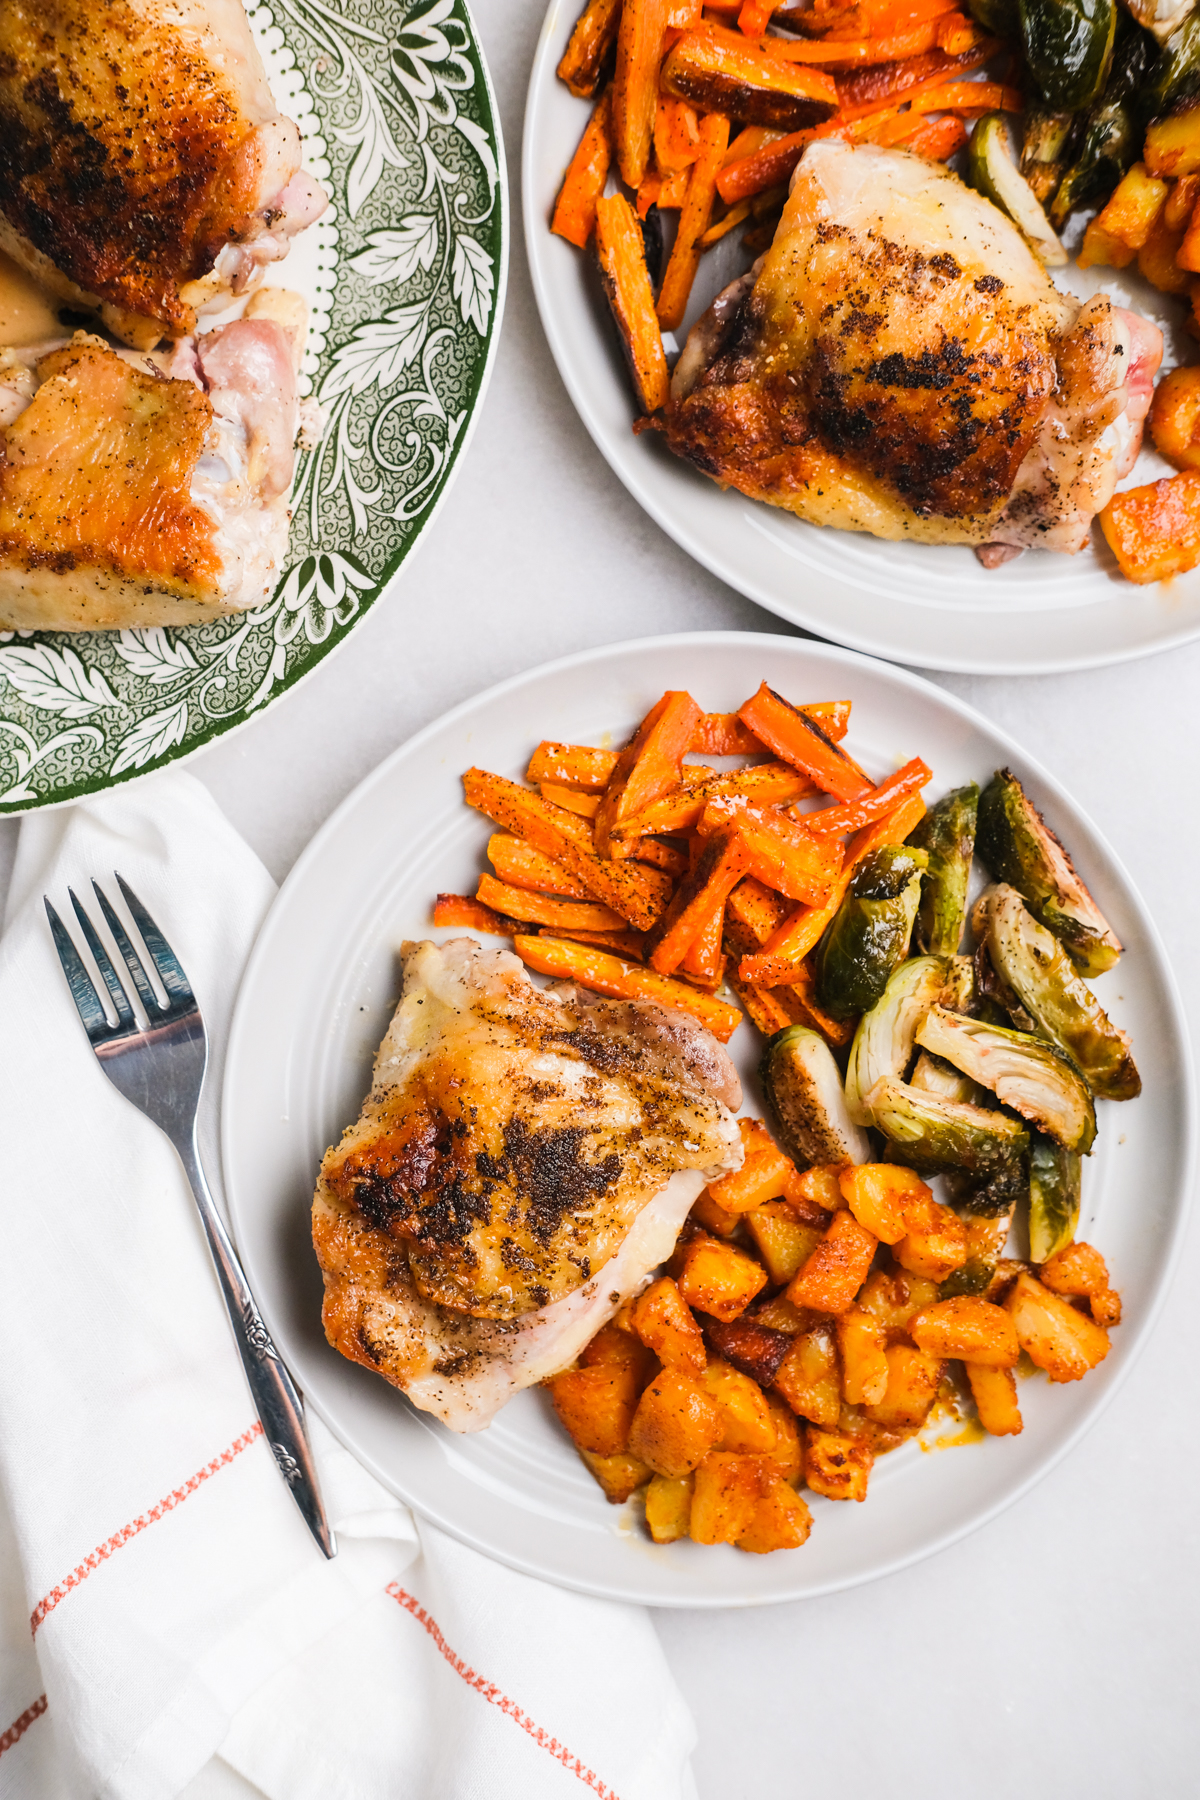 chicken thigh dinner with roasted vegetables and potatoes